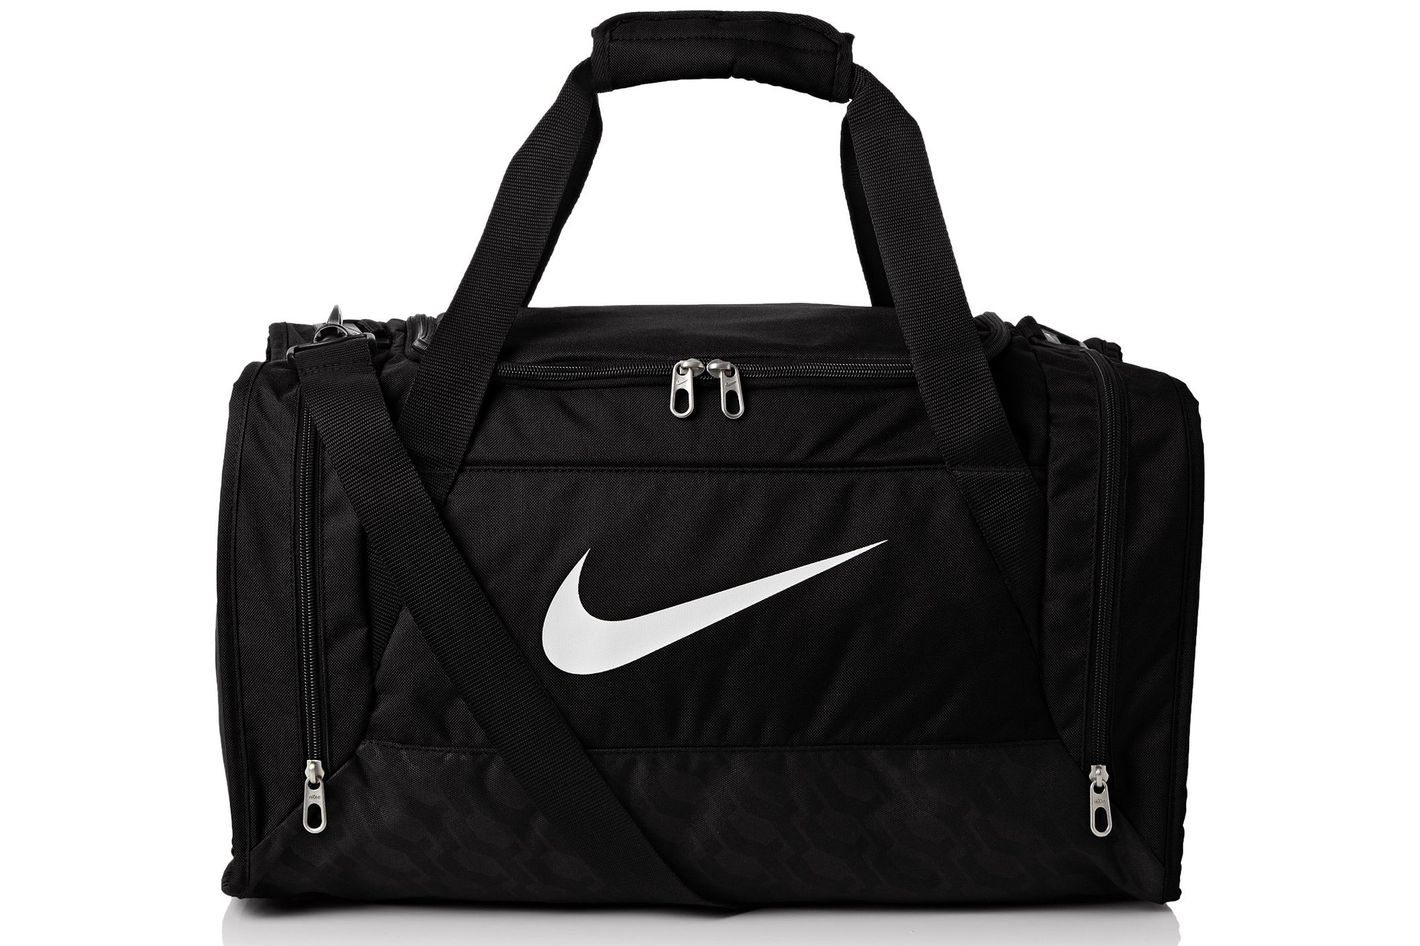 a174b9a9a5c1 Best Gym Bag for Every Kind of Exerciser